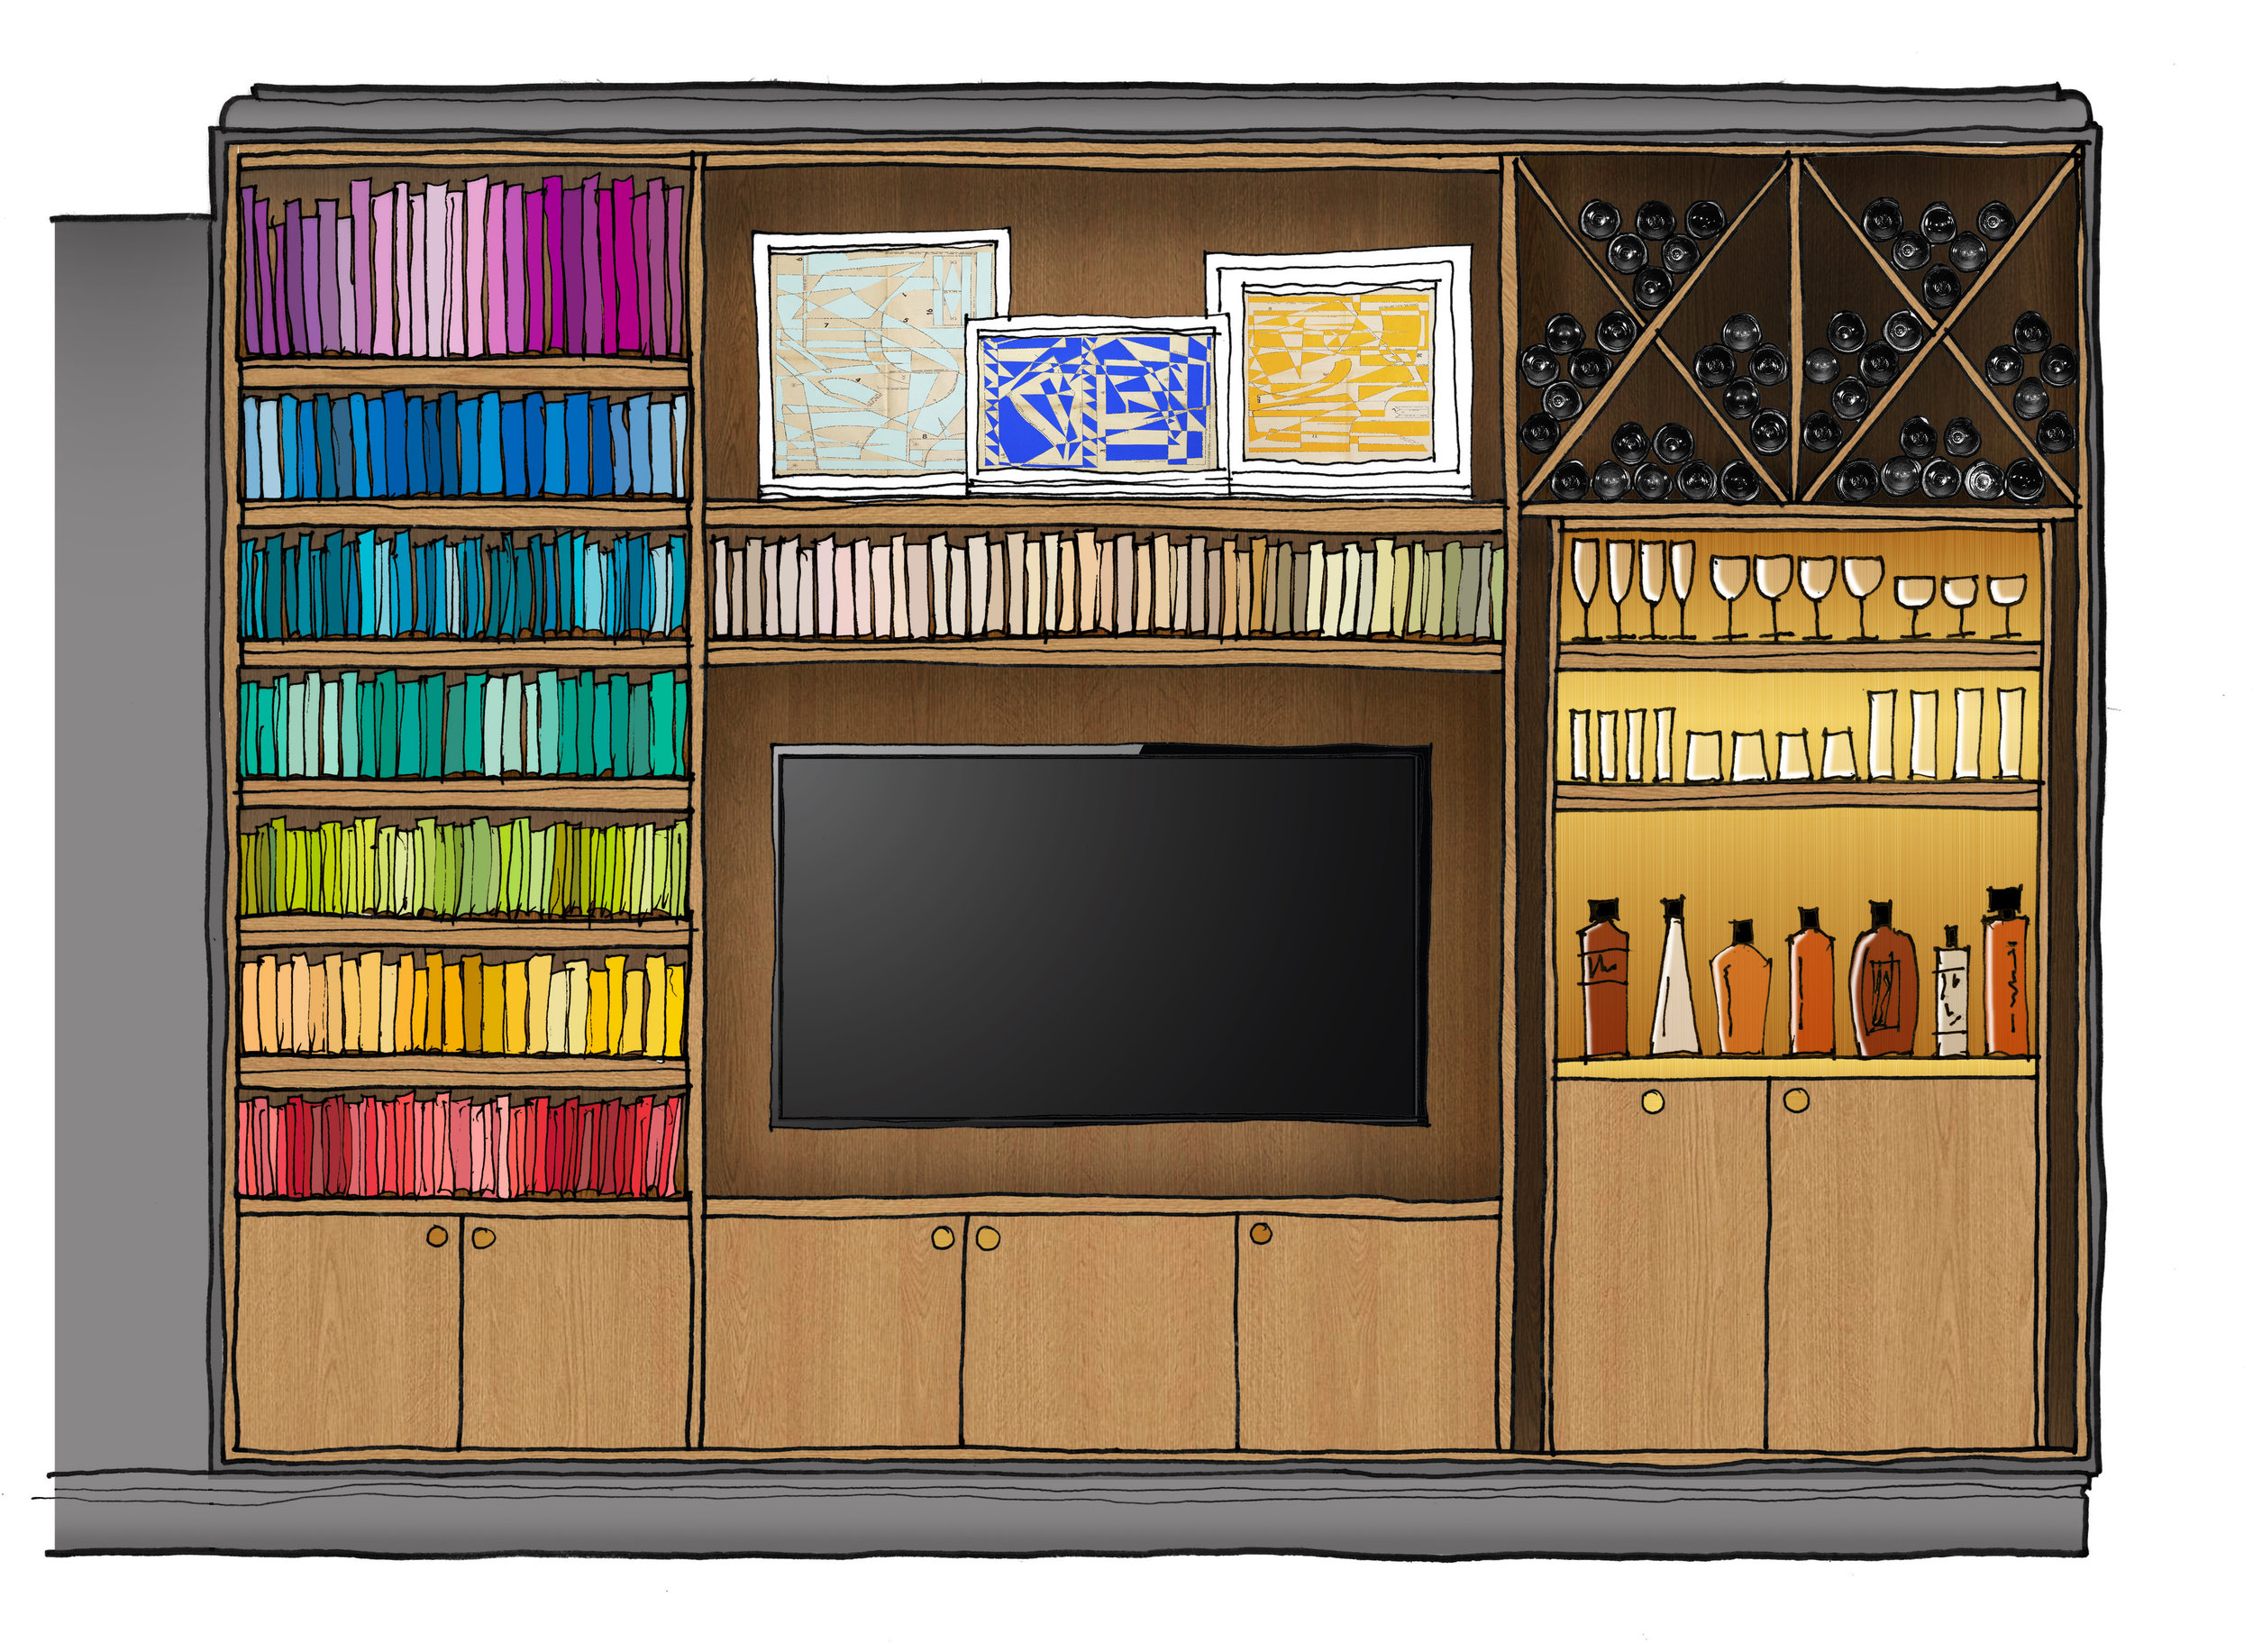 02-hillgate-place-victorian-townhouse-renovation-bookcase-drinks-cabinet-concept-elevation-sketch-drawing-tv-unit-interior-design-architecture-notting-hill-west-london-uk-rider-stirland-architects.jpg